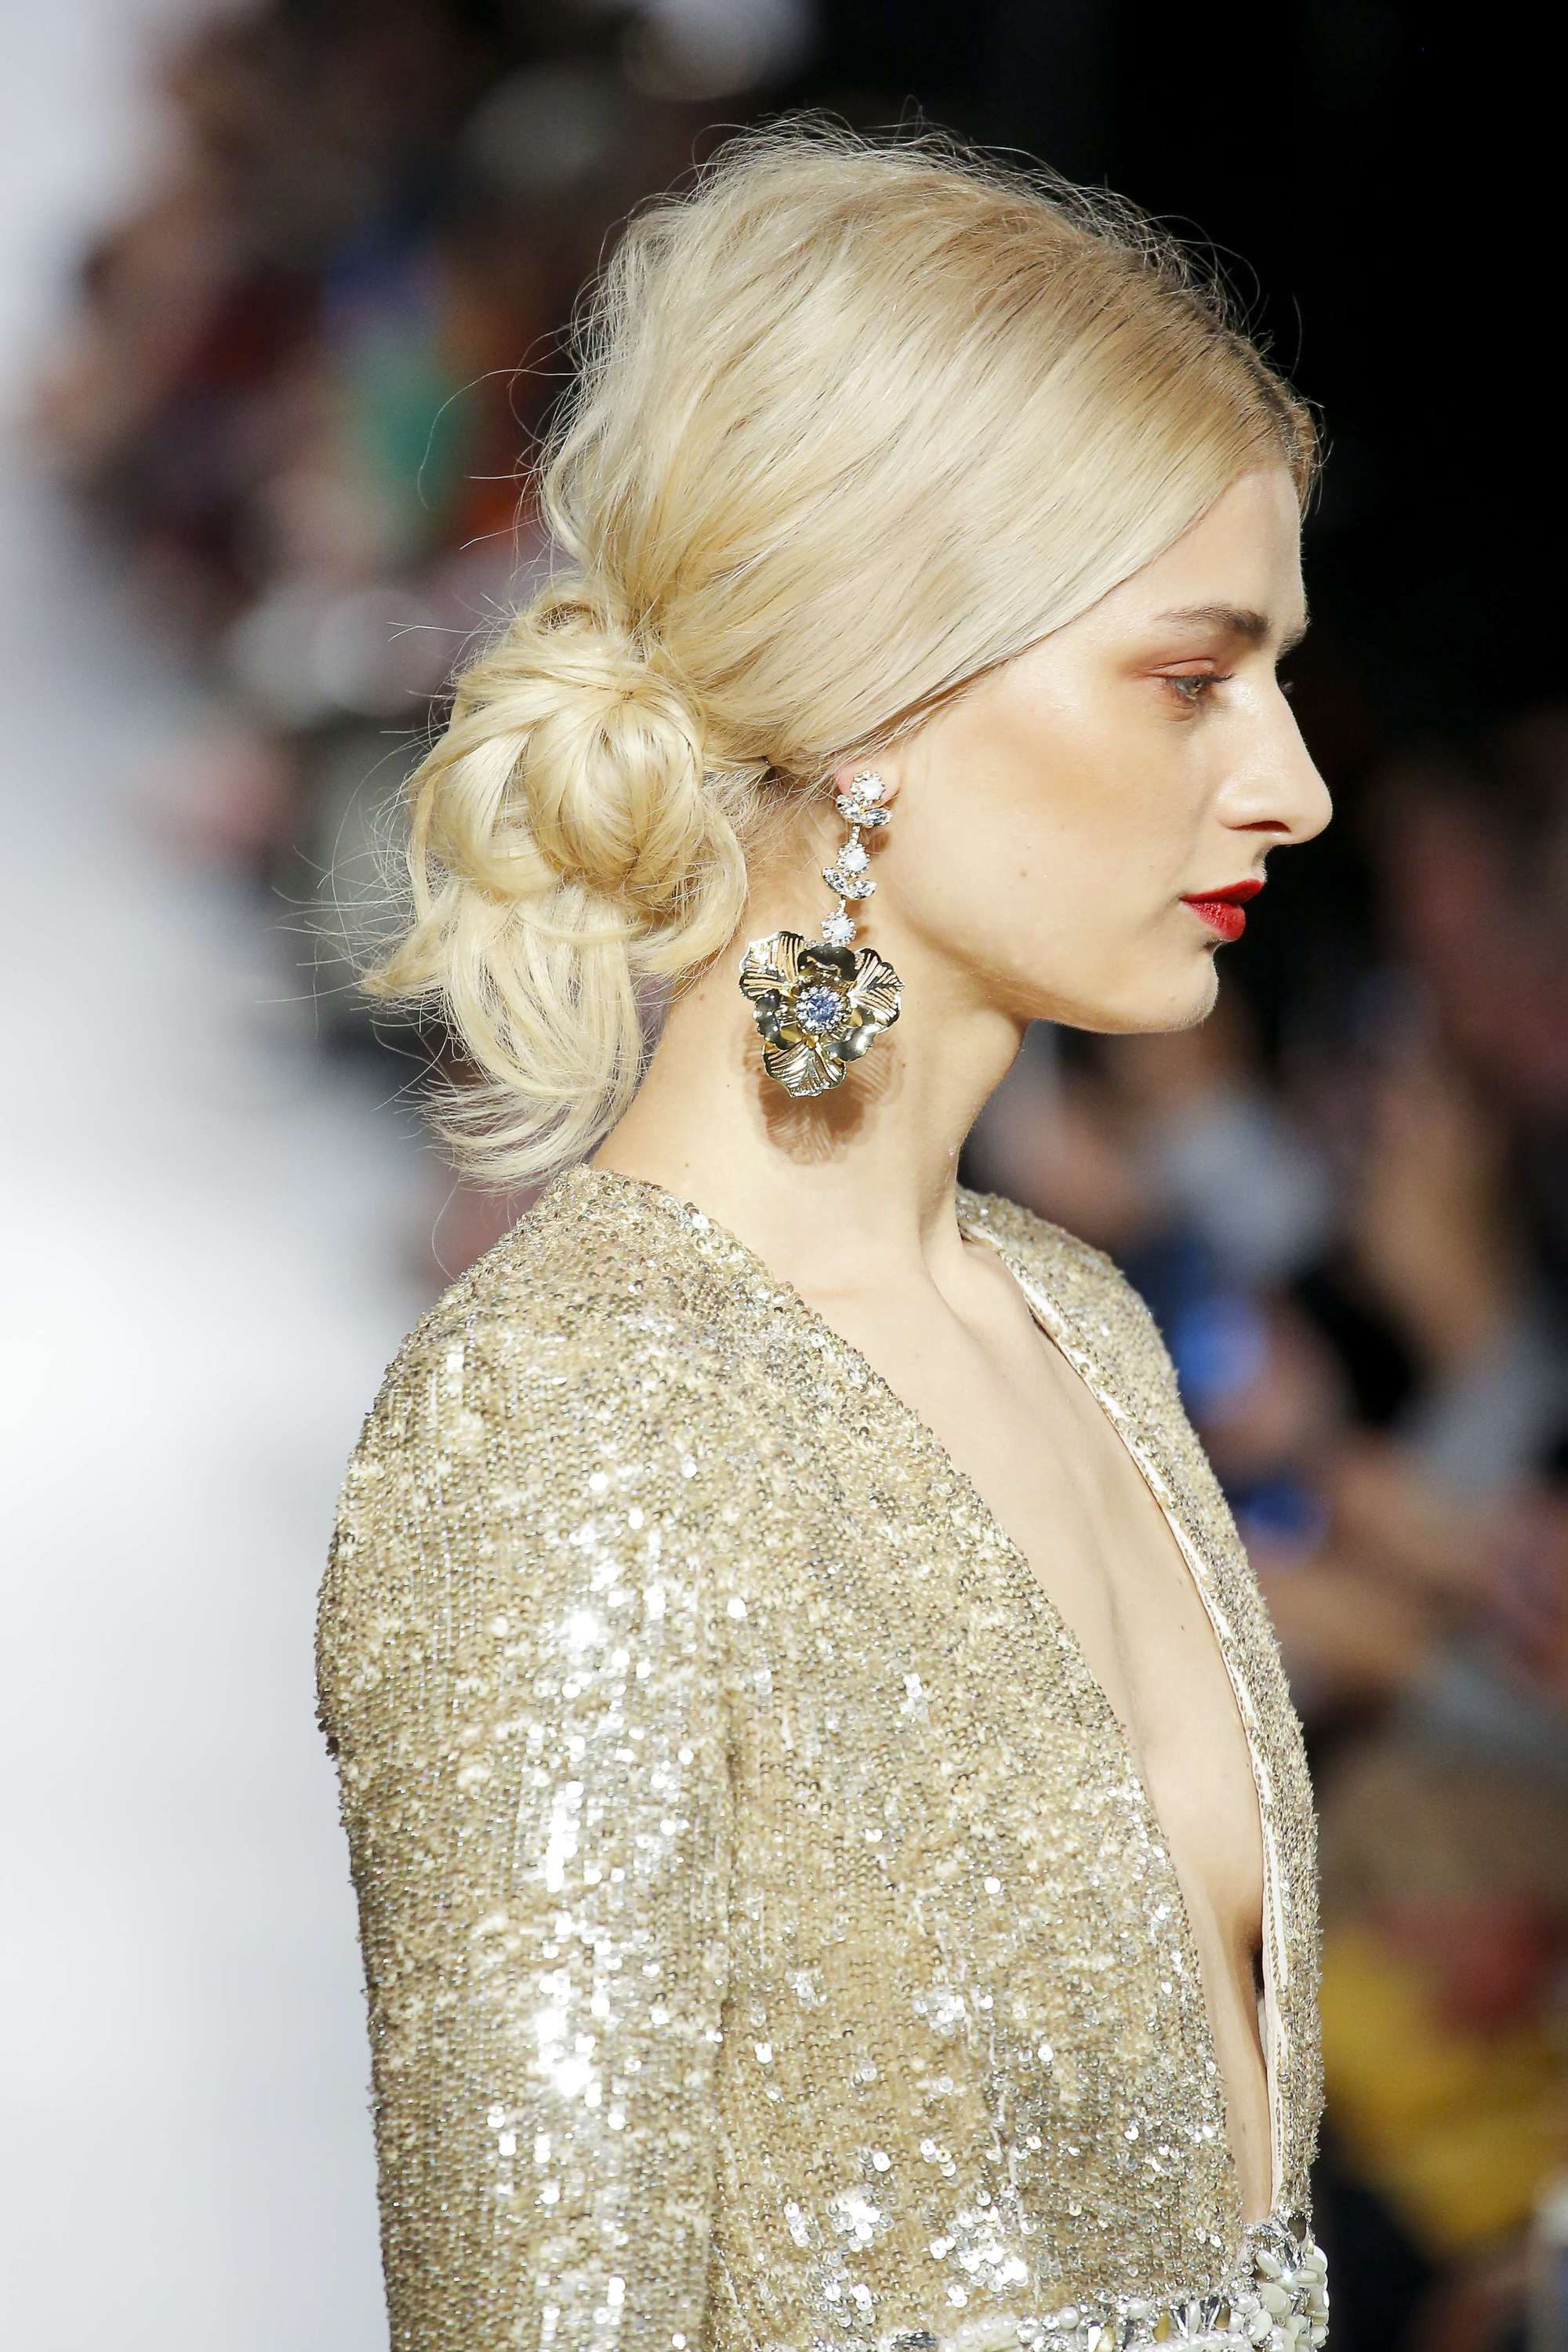 Christmas Hairstyles To Make The Party Season Go With A Bang All